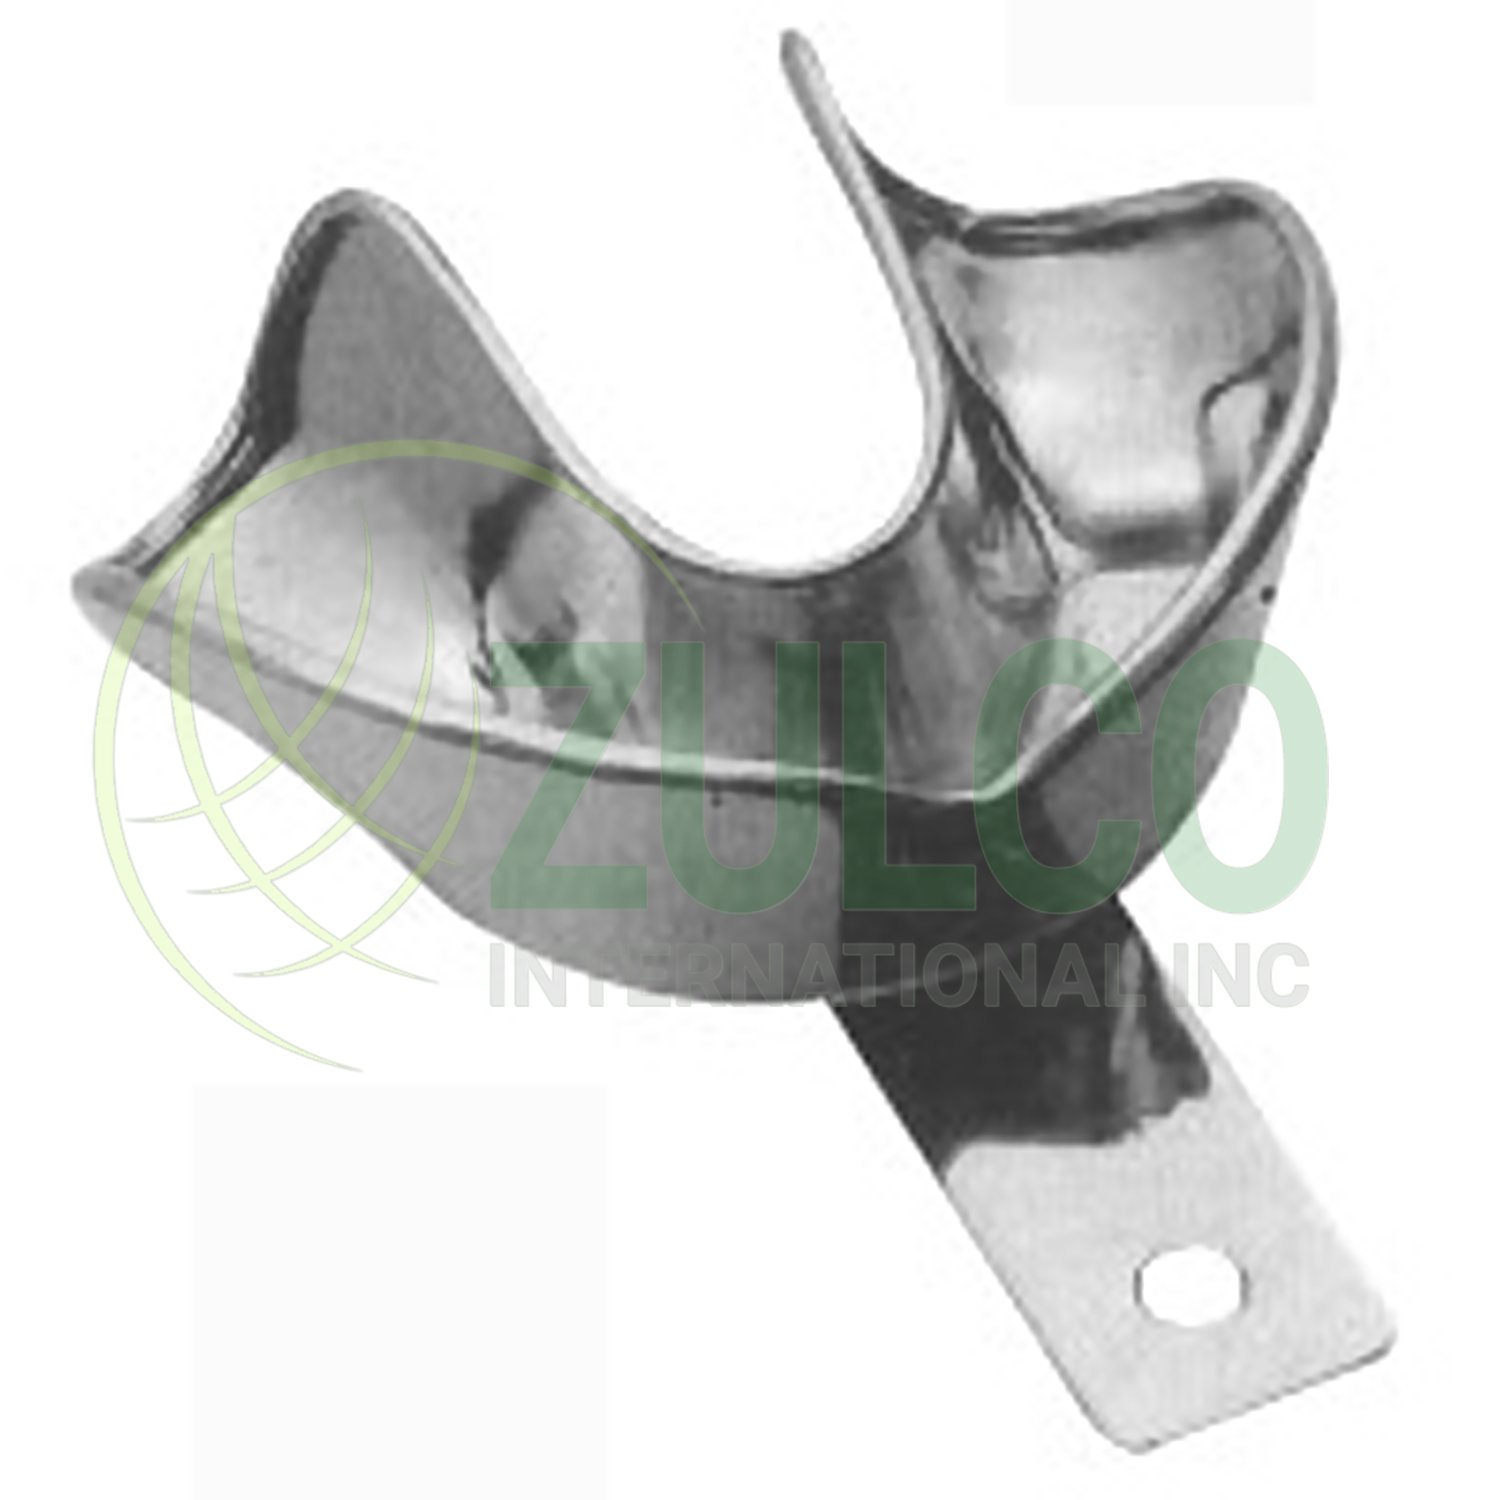 Impression Trays Made Of 18/8 Stainless Steel